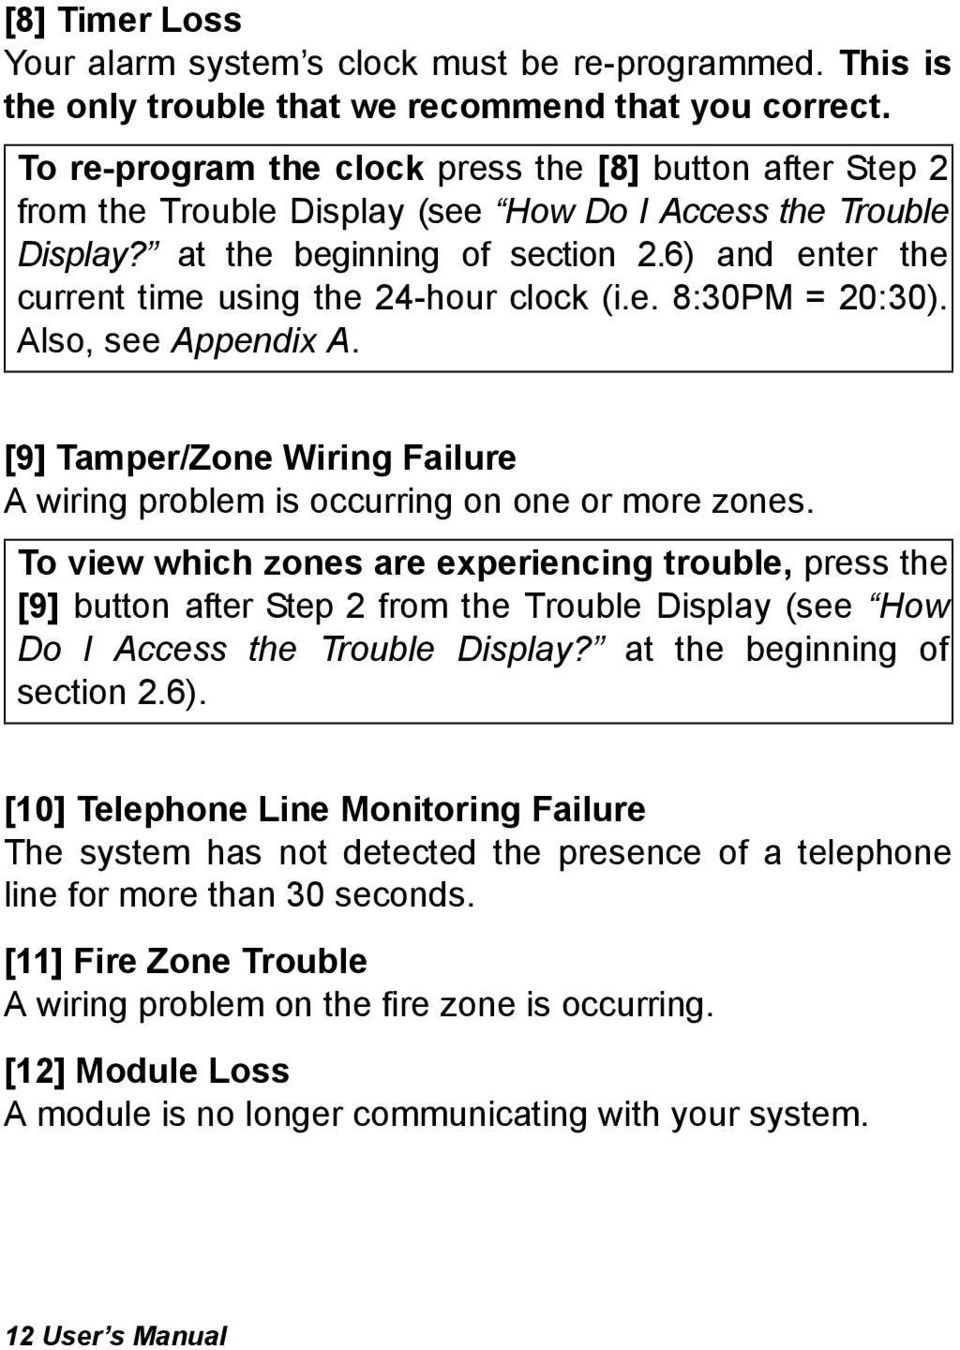 6) and enter the current time using the 24-hour clock (i.e. 8:30PM = 20:30). Also, see Appendix A. [9] Tamper/Zone Wiring Failure A wiring problem is occurring on one or more zones.